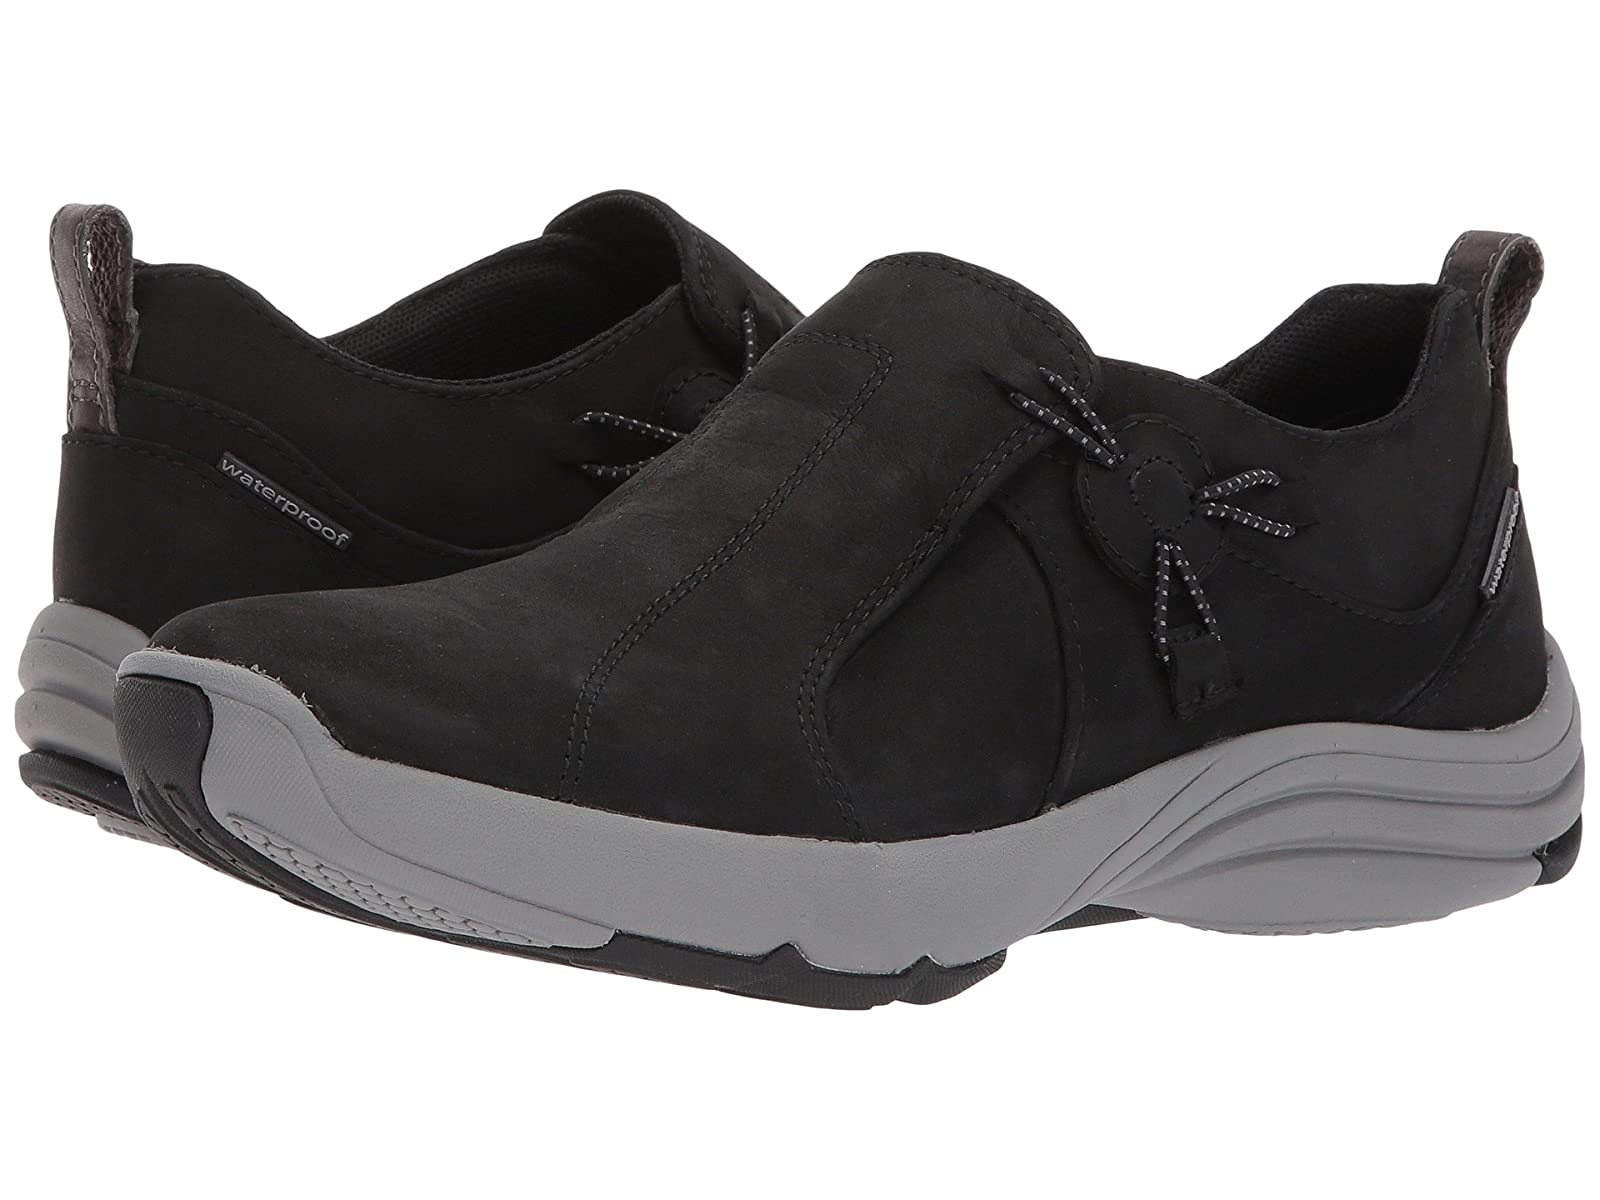 Clarks Wave RiverCheap and distinctive eye-catching shoes